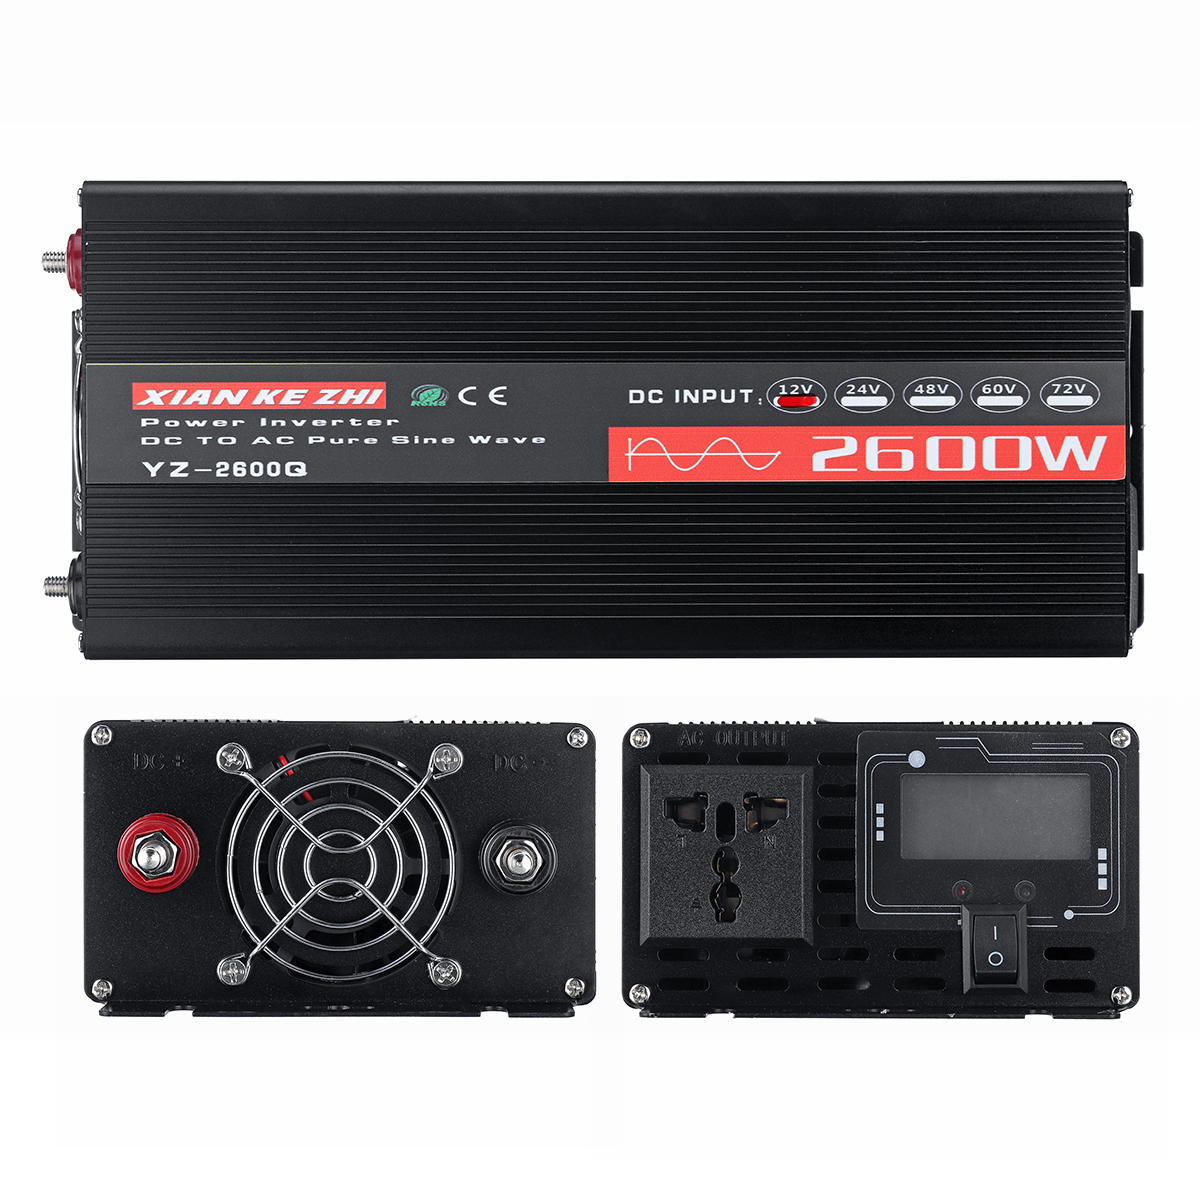 200W DC12V to AC220V Pure Sine Wave DC to AC Power Inverter with Higher Conversion Rate Power Inverter